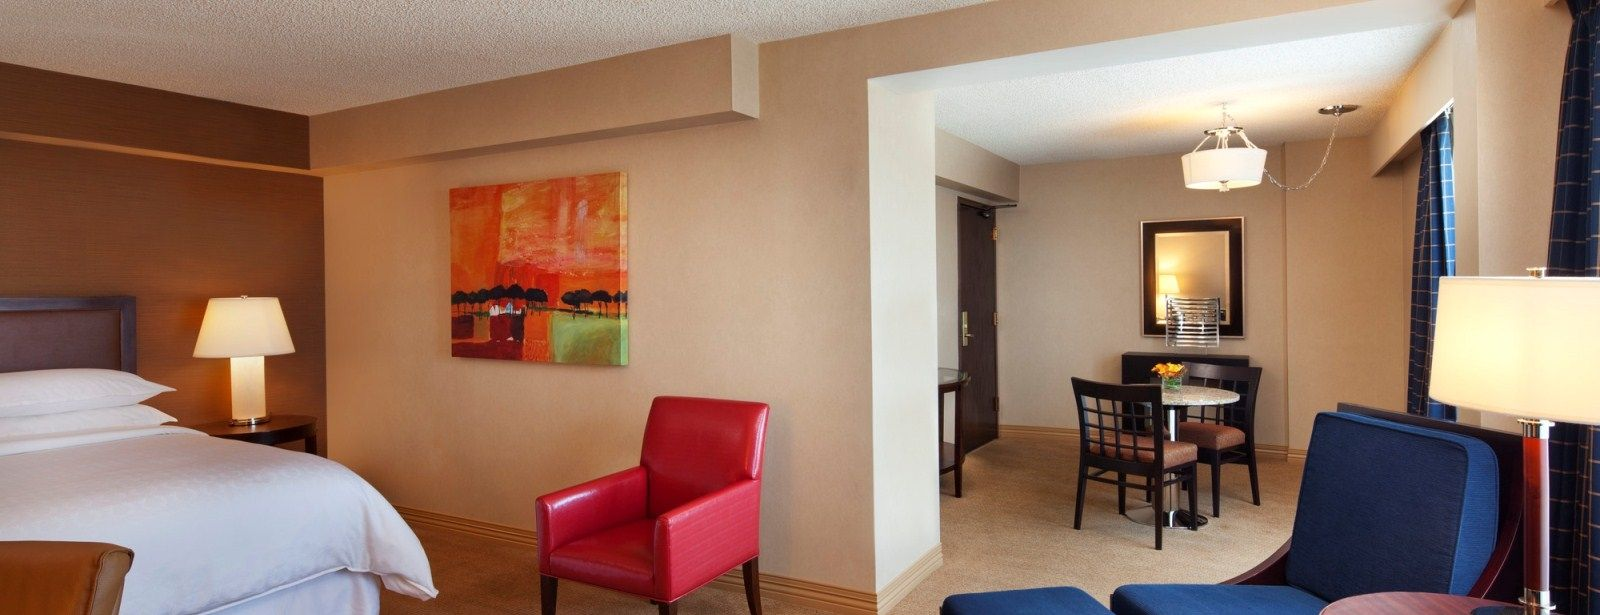 Junior Suites | Sheraton Albuquerque Uptown